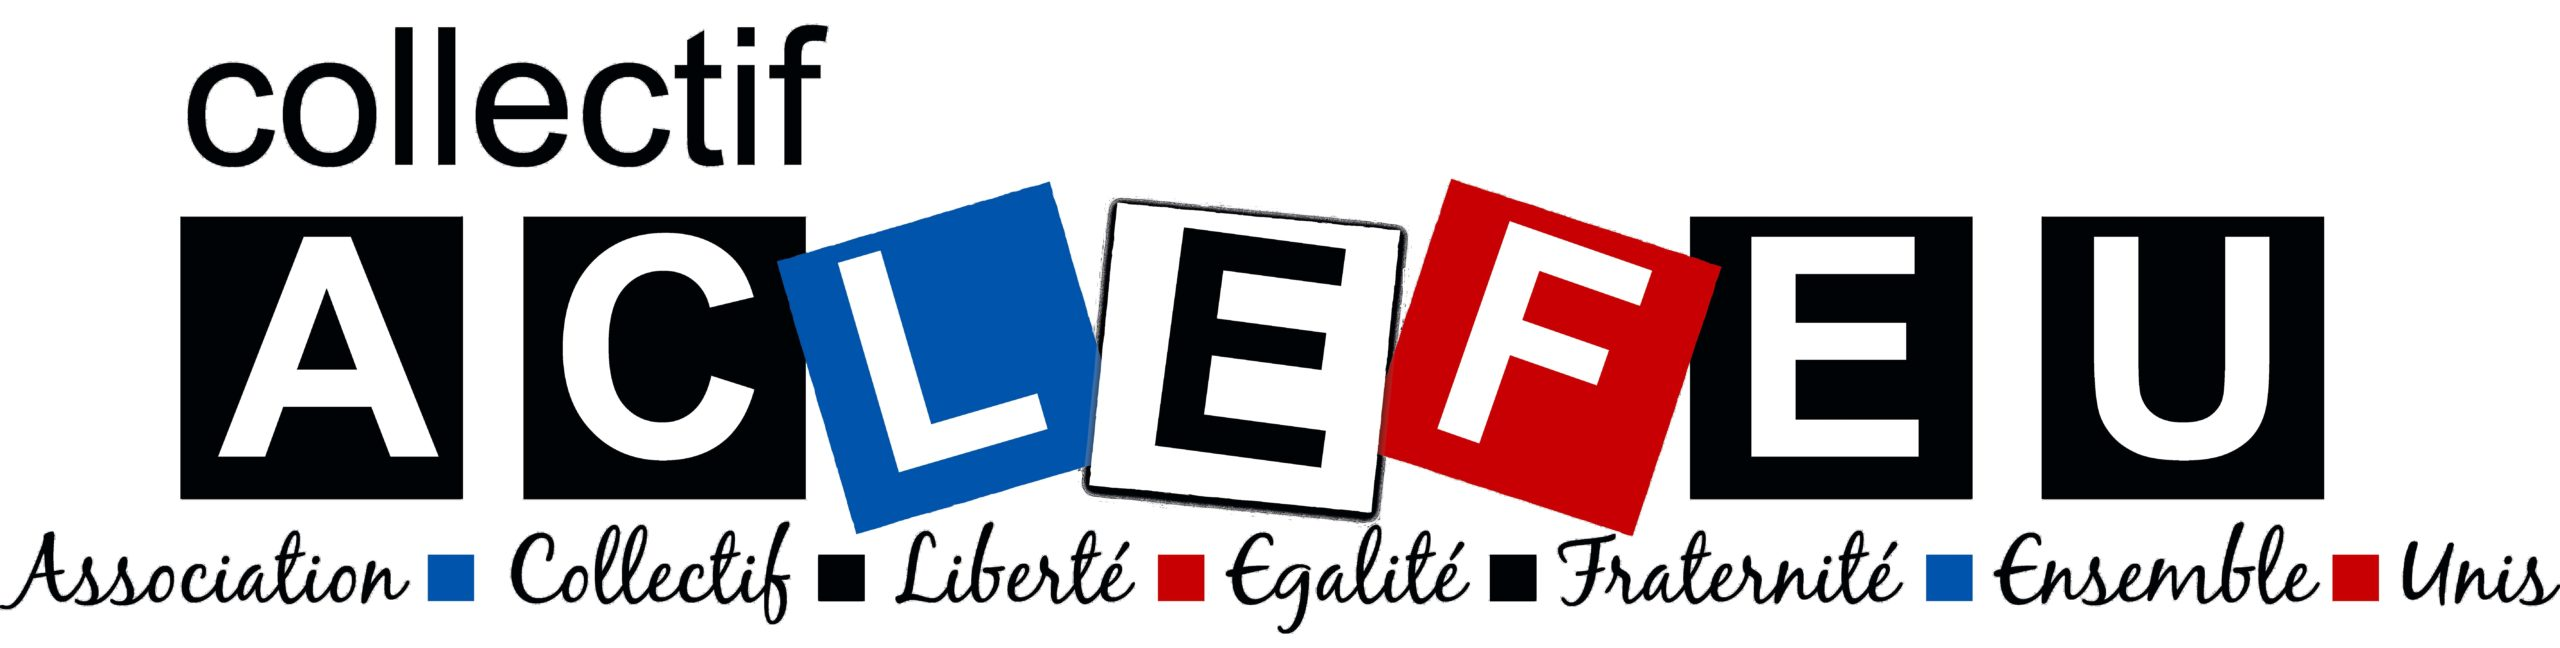 ACLEFEU - Site Web du Collectif Aclefeu